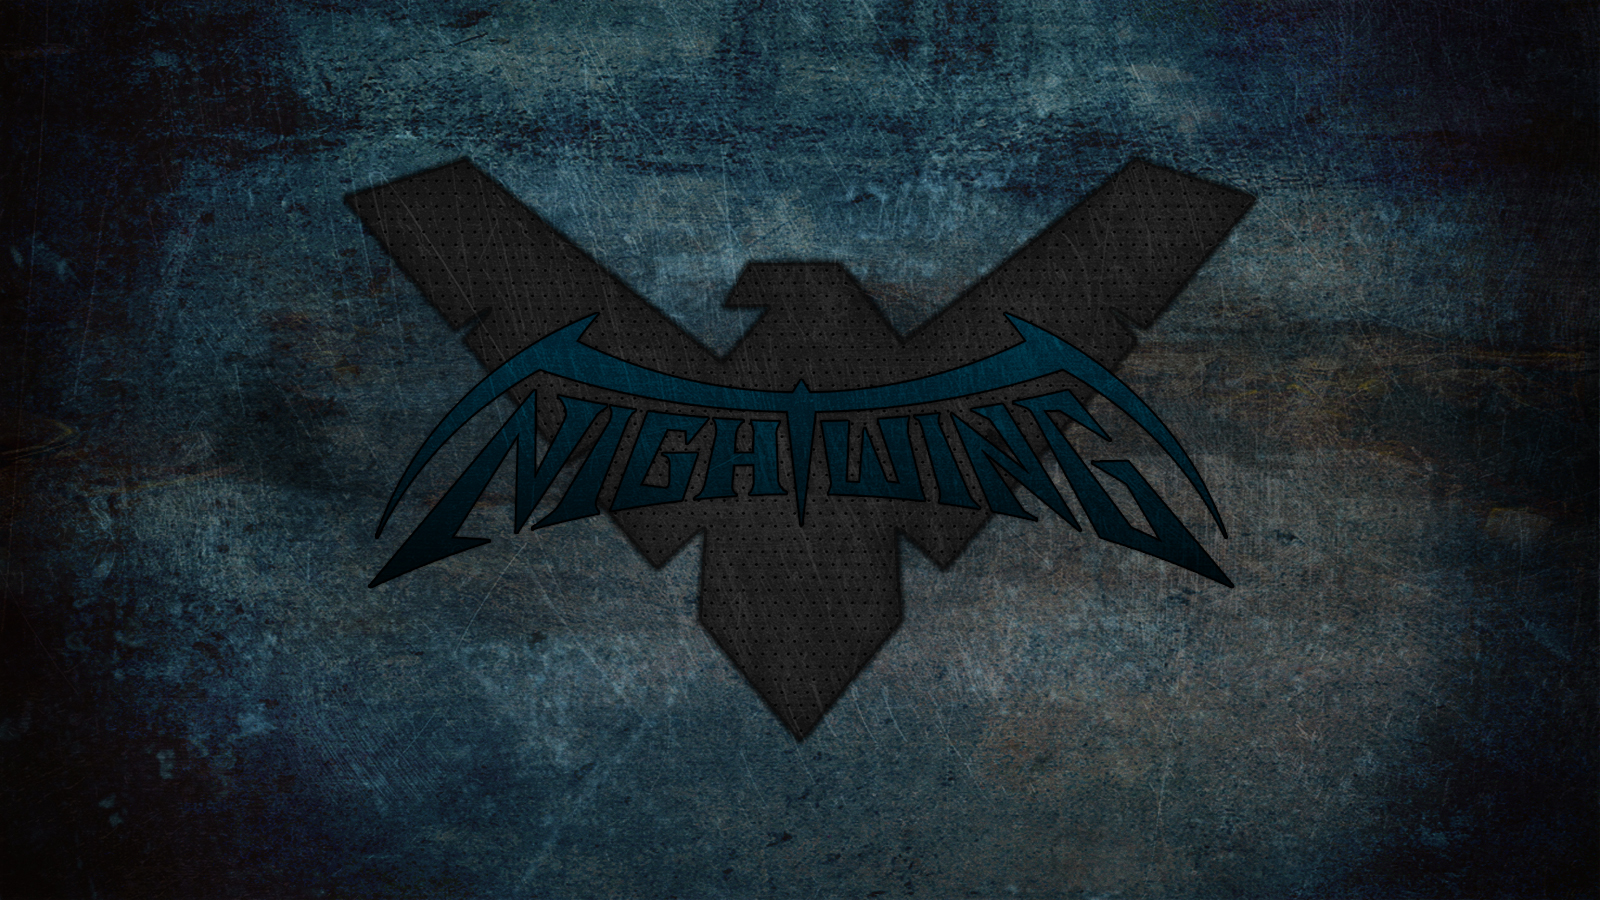 Nightwing Wallpaper 1600x900